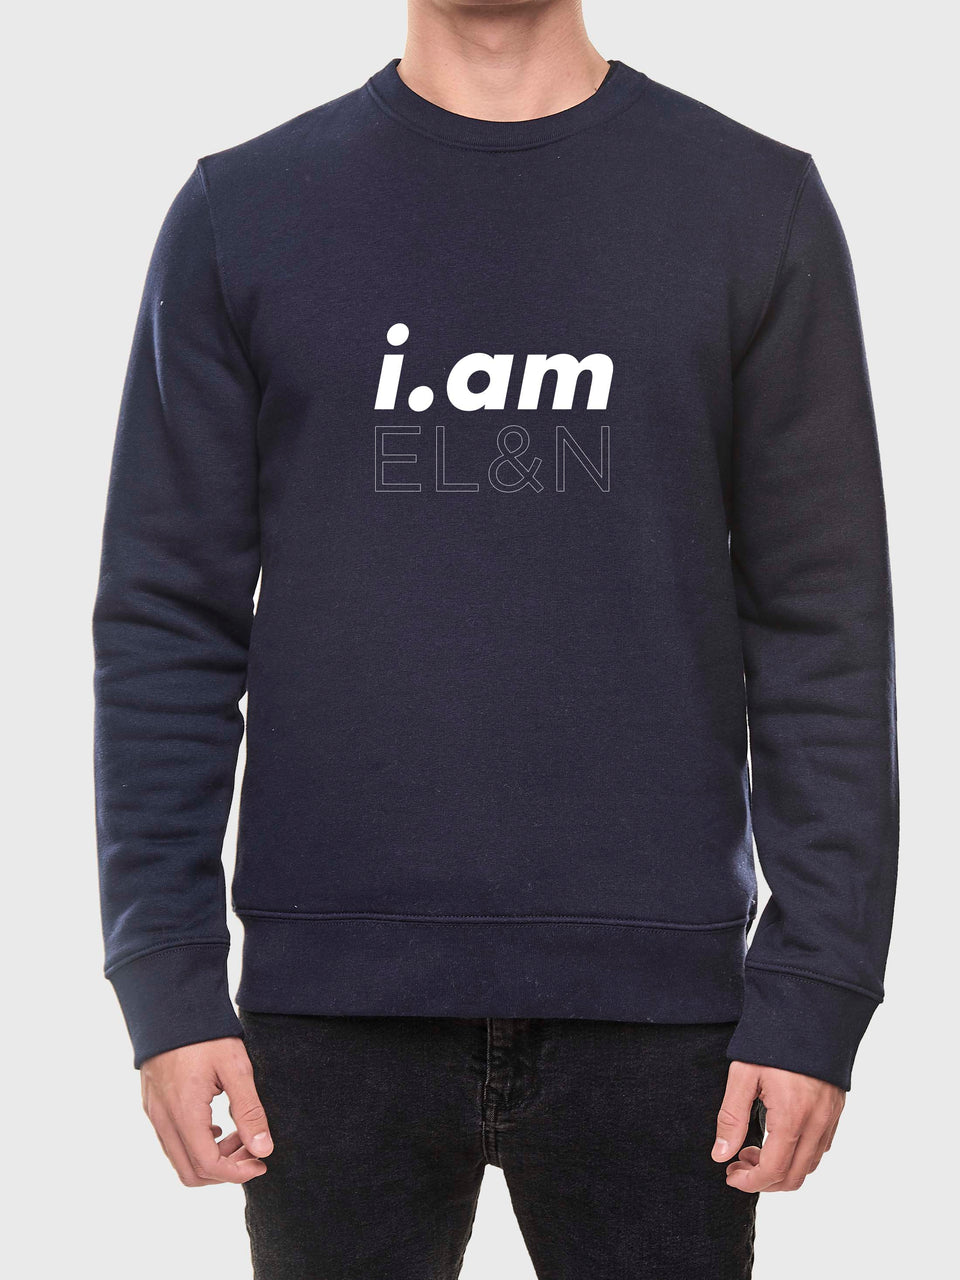 i.am EL&n - Black / Navy - unisex sweatshirt